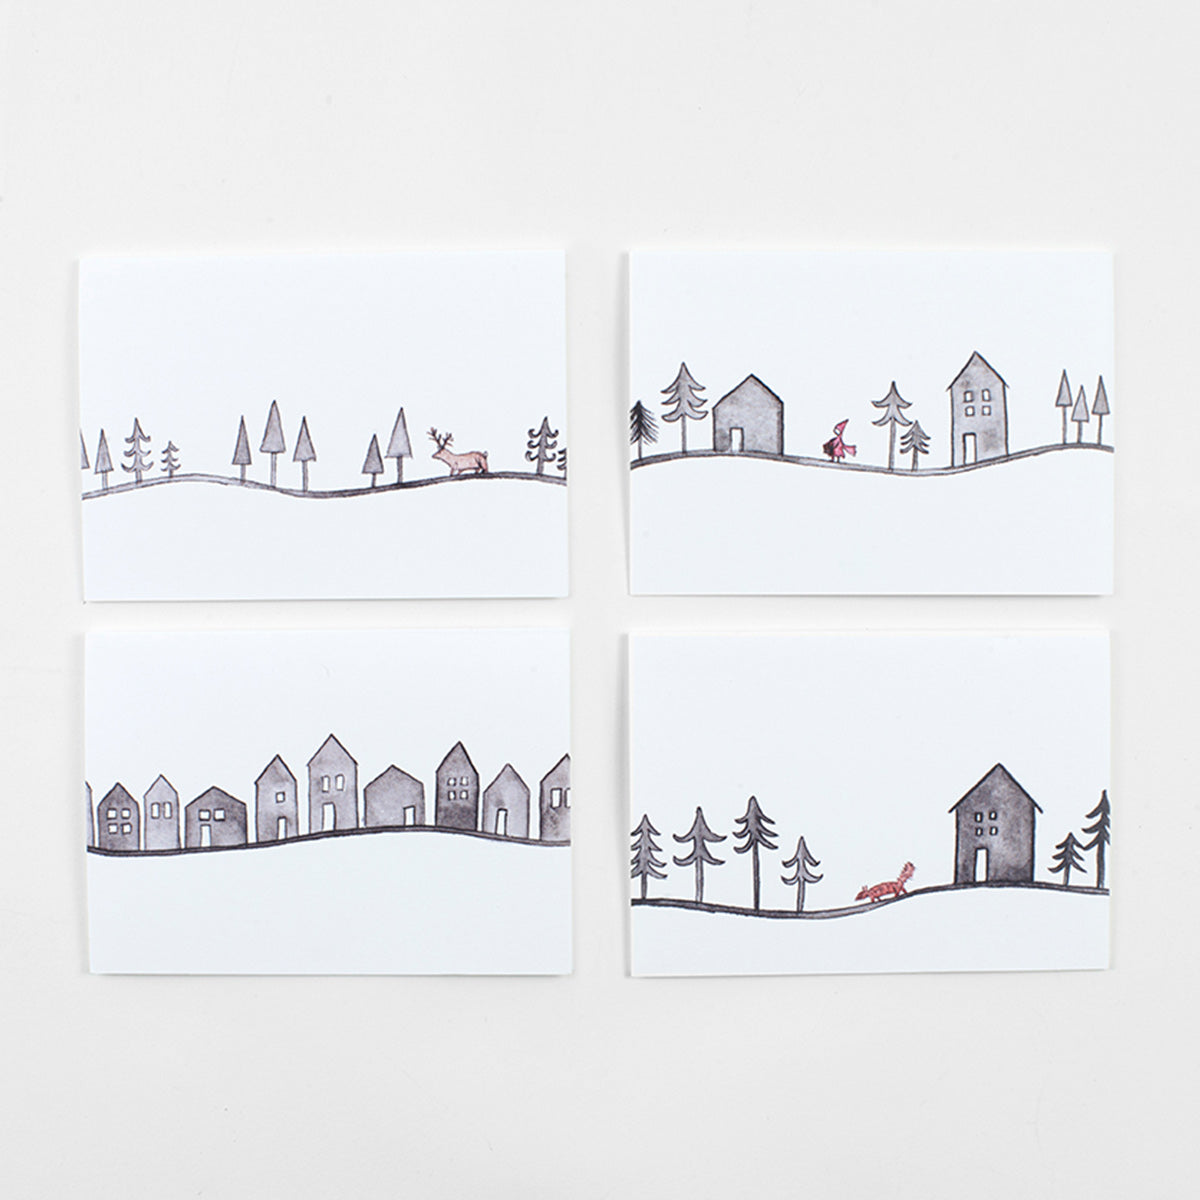 Set of 8 Christmas Cards designed by Carlie Forsyth exclusively for Freyr & Fell